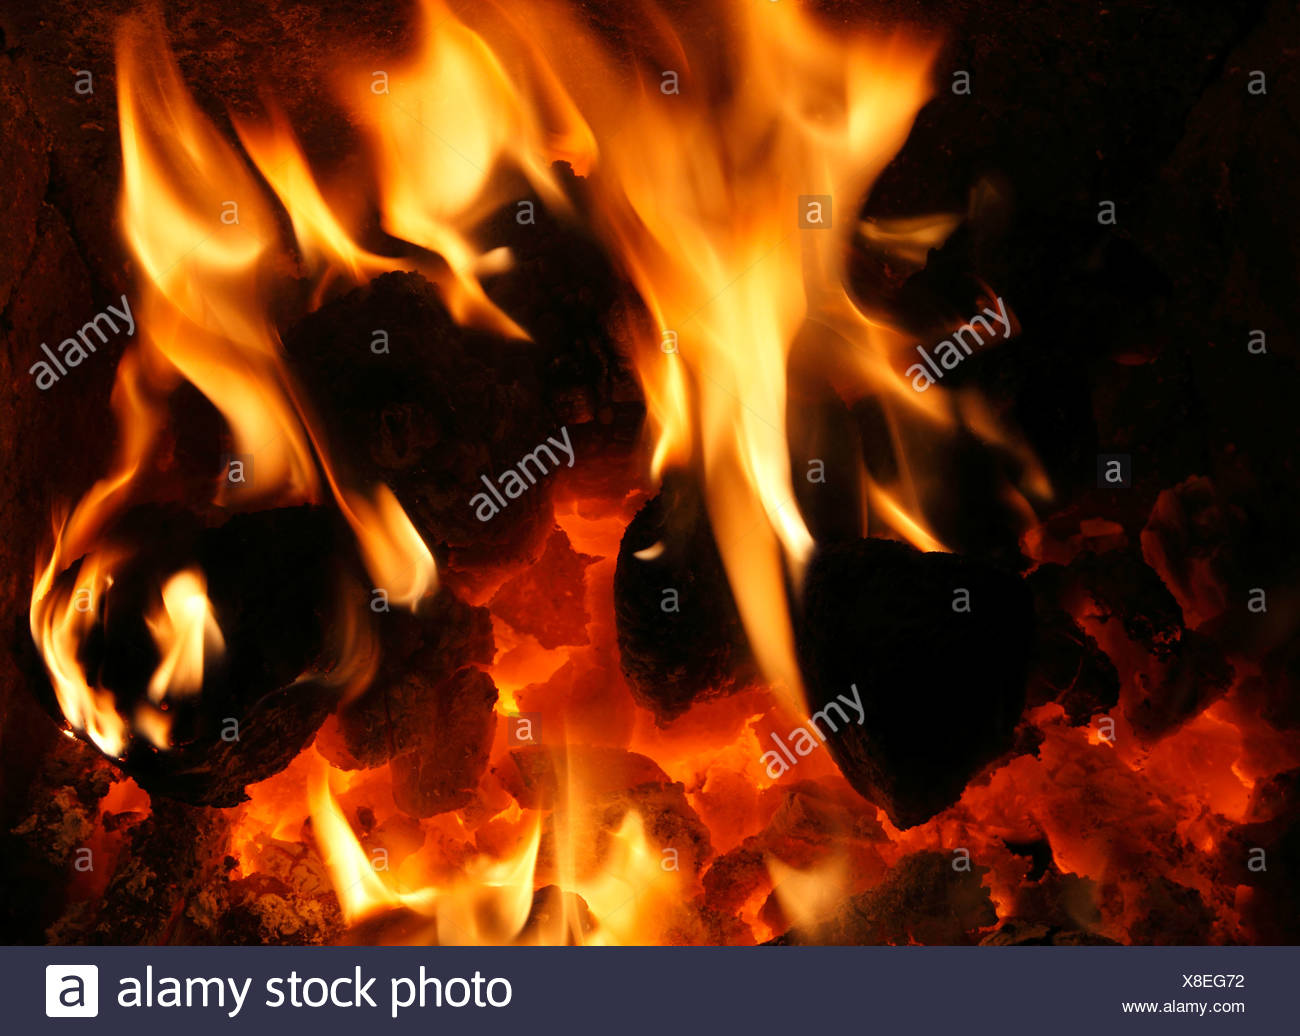 Solid Fuel, domestic coal Fire, burning, flame, flames, hearth, fireside, hea,t energy, power, fires, warmth, warm, home, fires - Stock Image